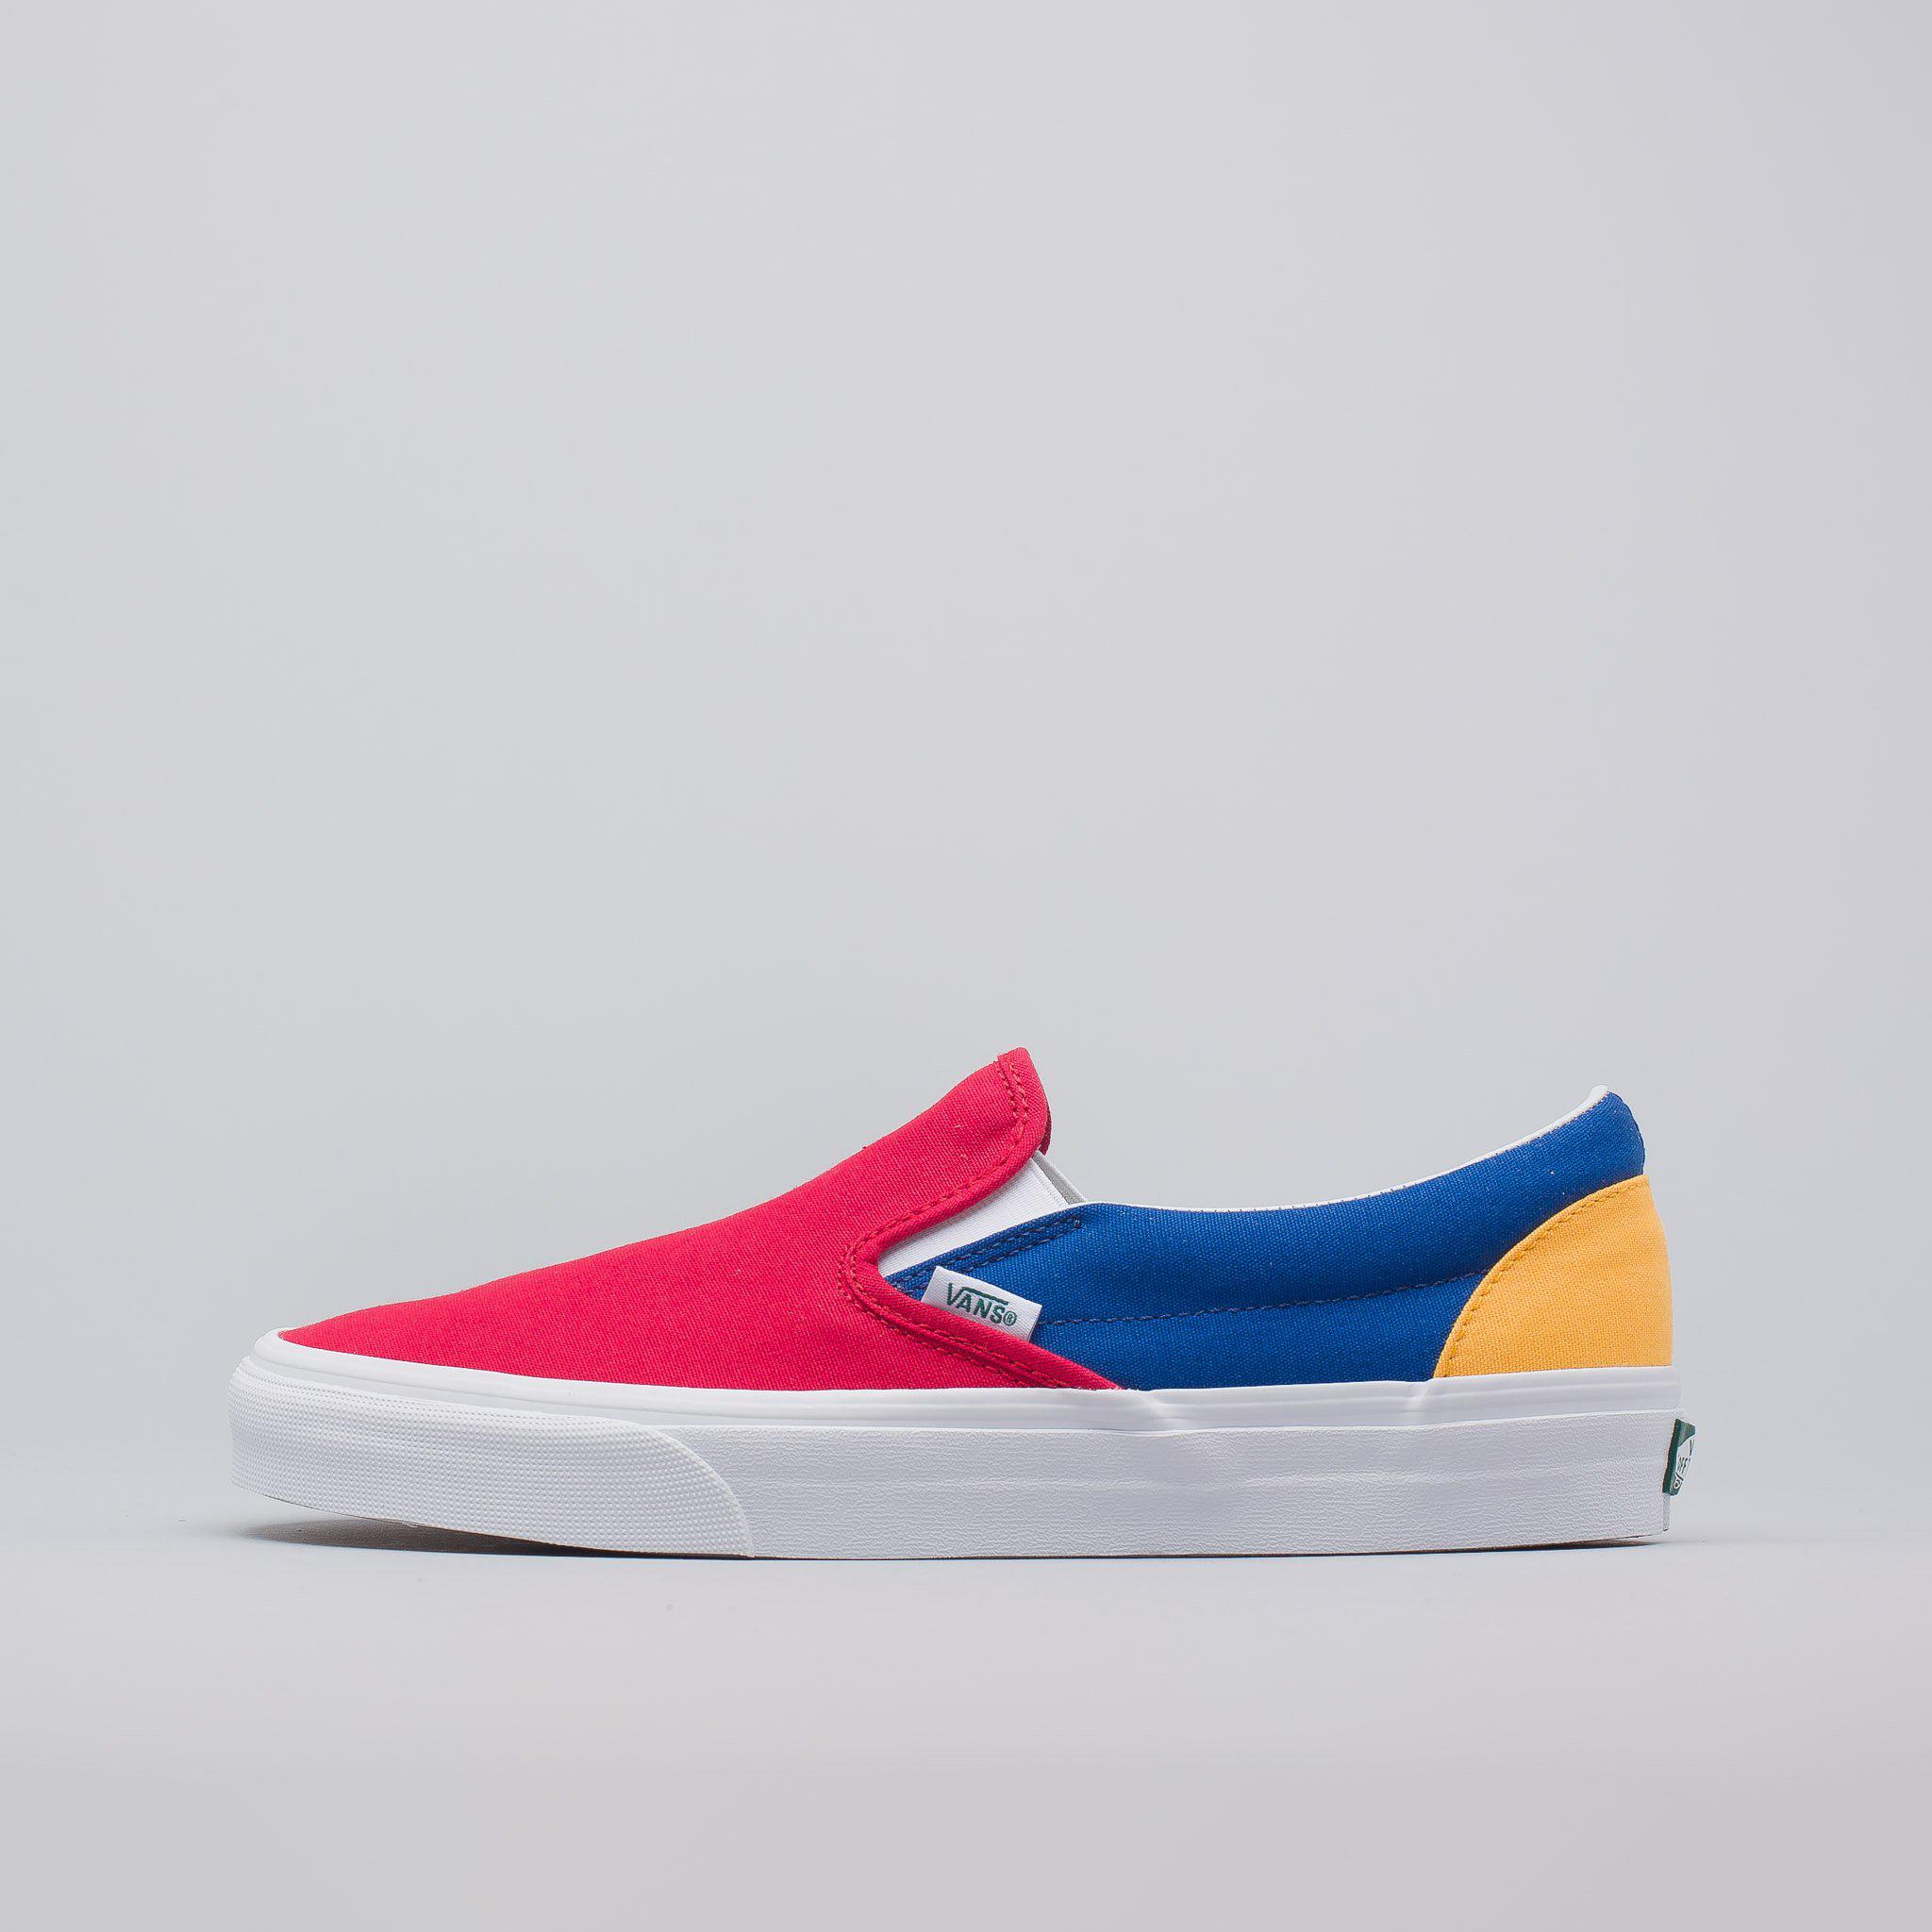 6b1f994fac Lyst - Vans Yacht Club Classic Slip-on In Red blue yellow in Blue ...